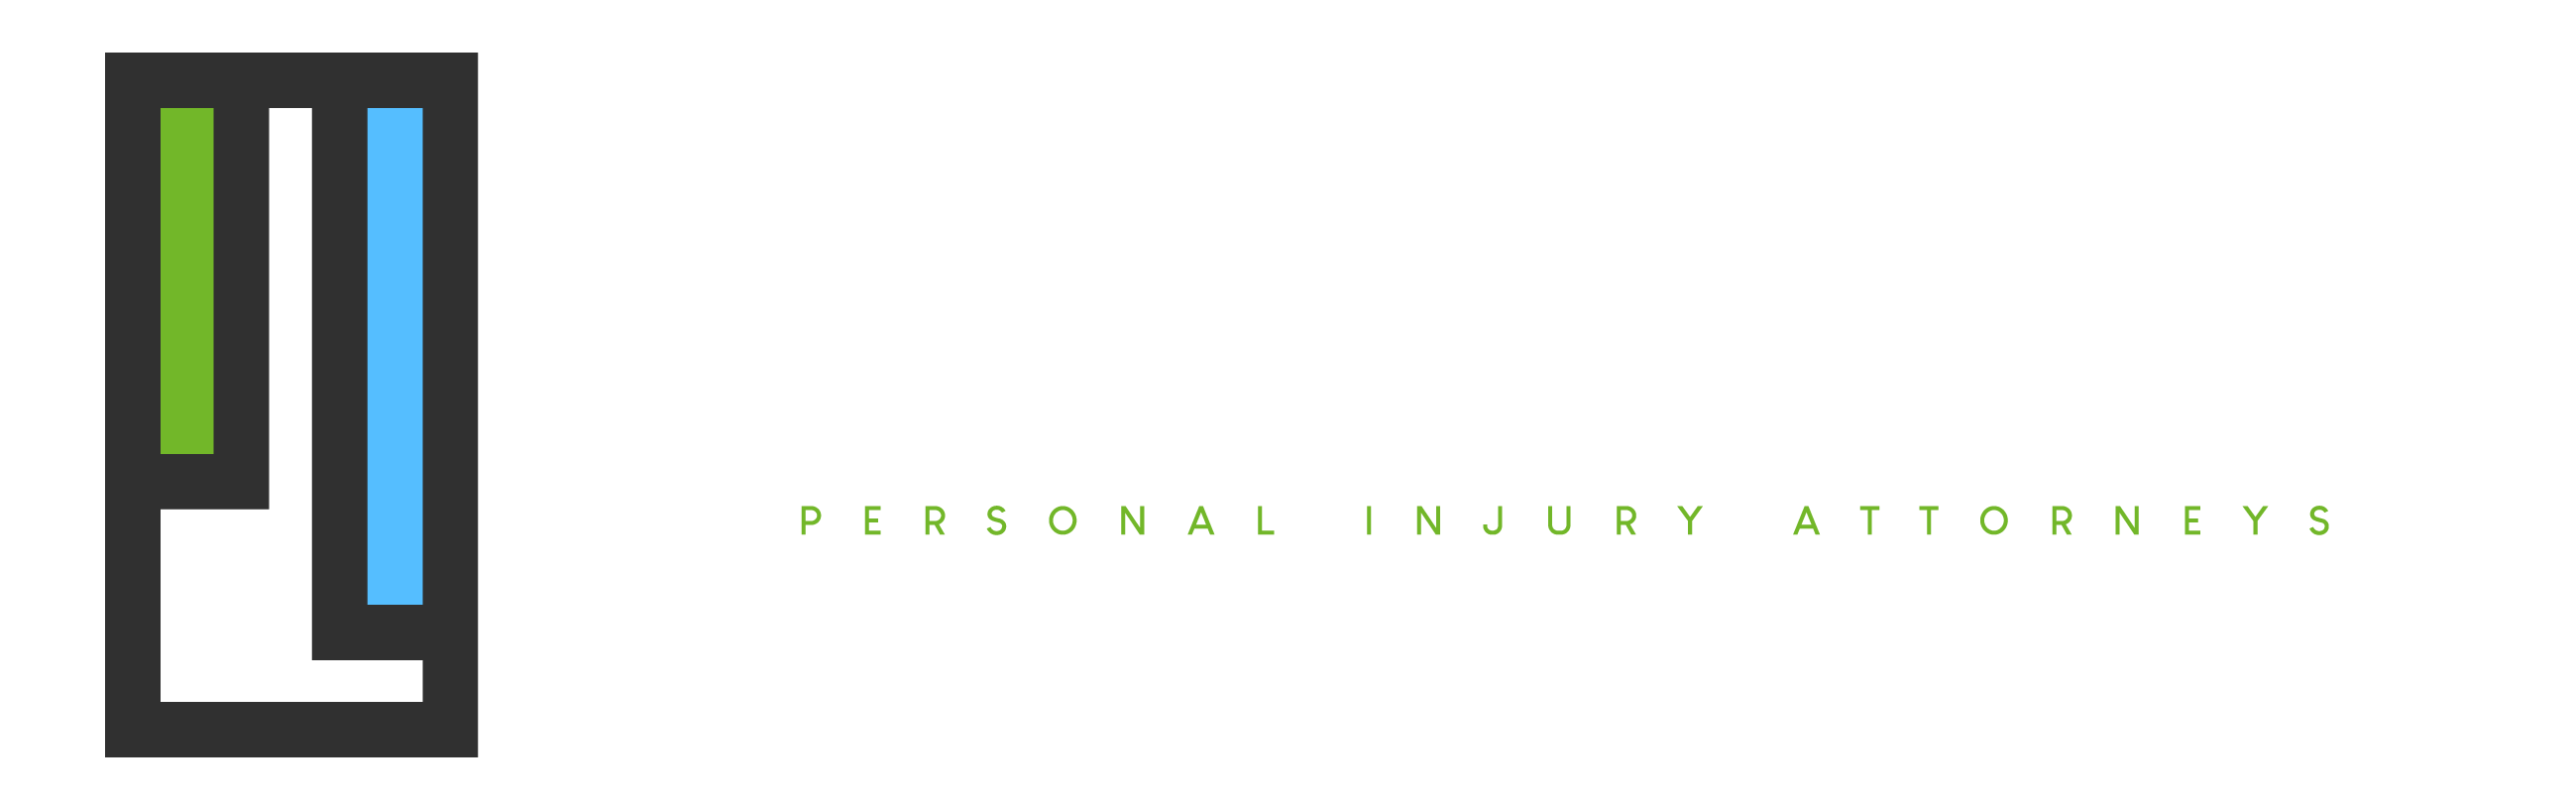 LOWE LAW Full Color White with White Text-01